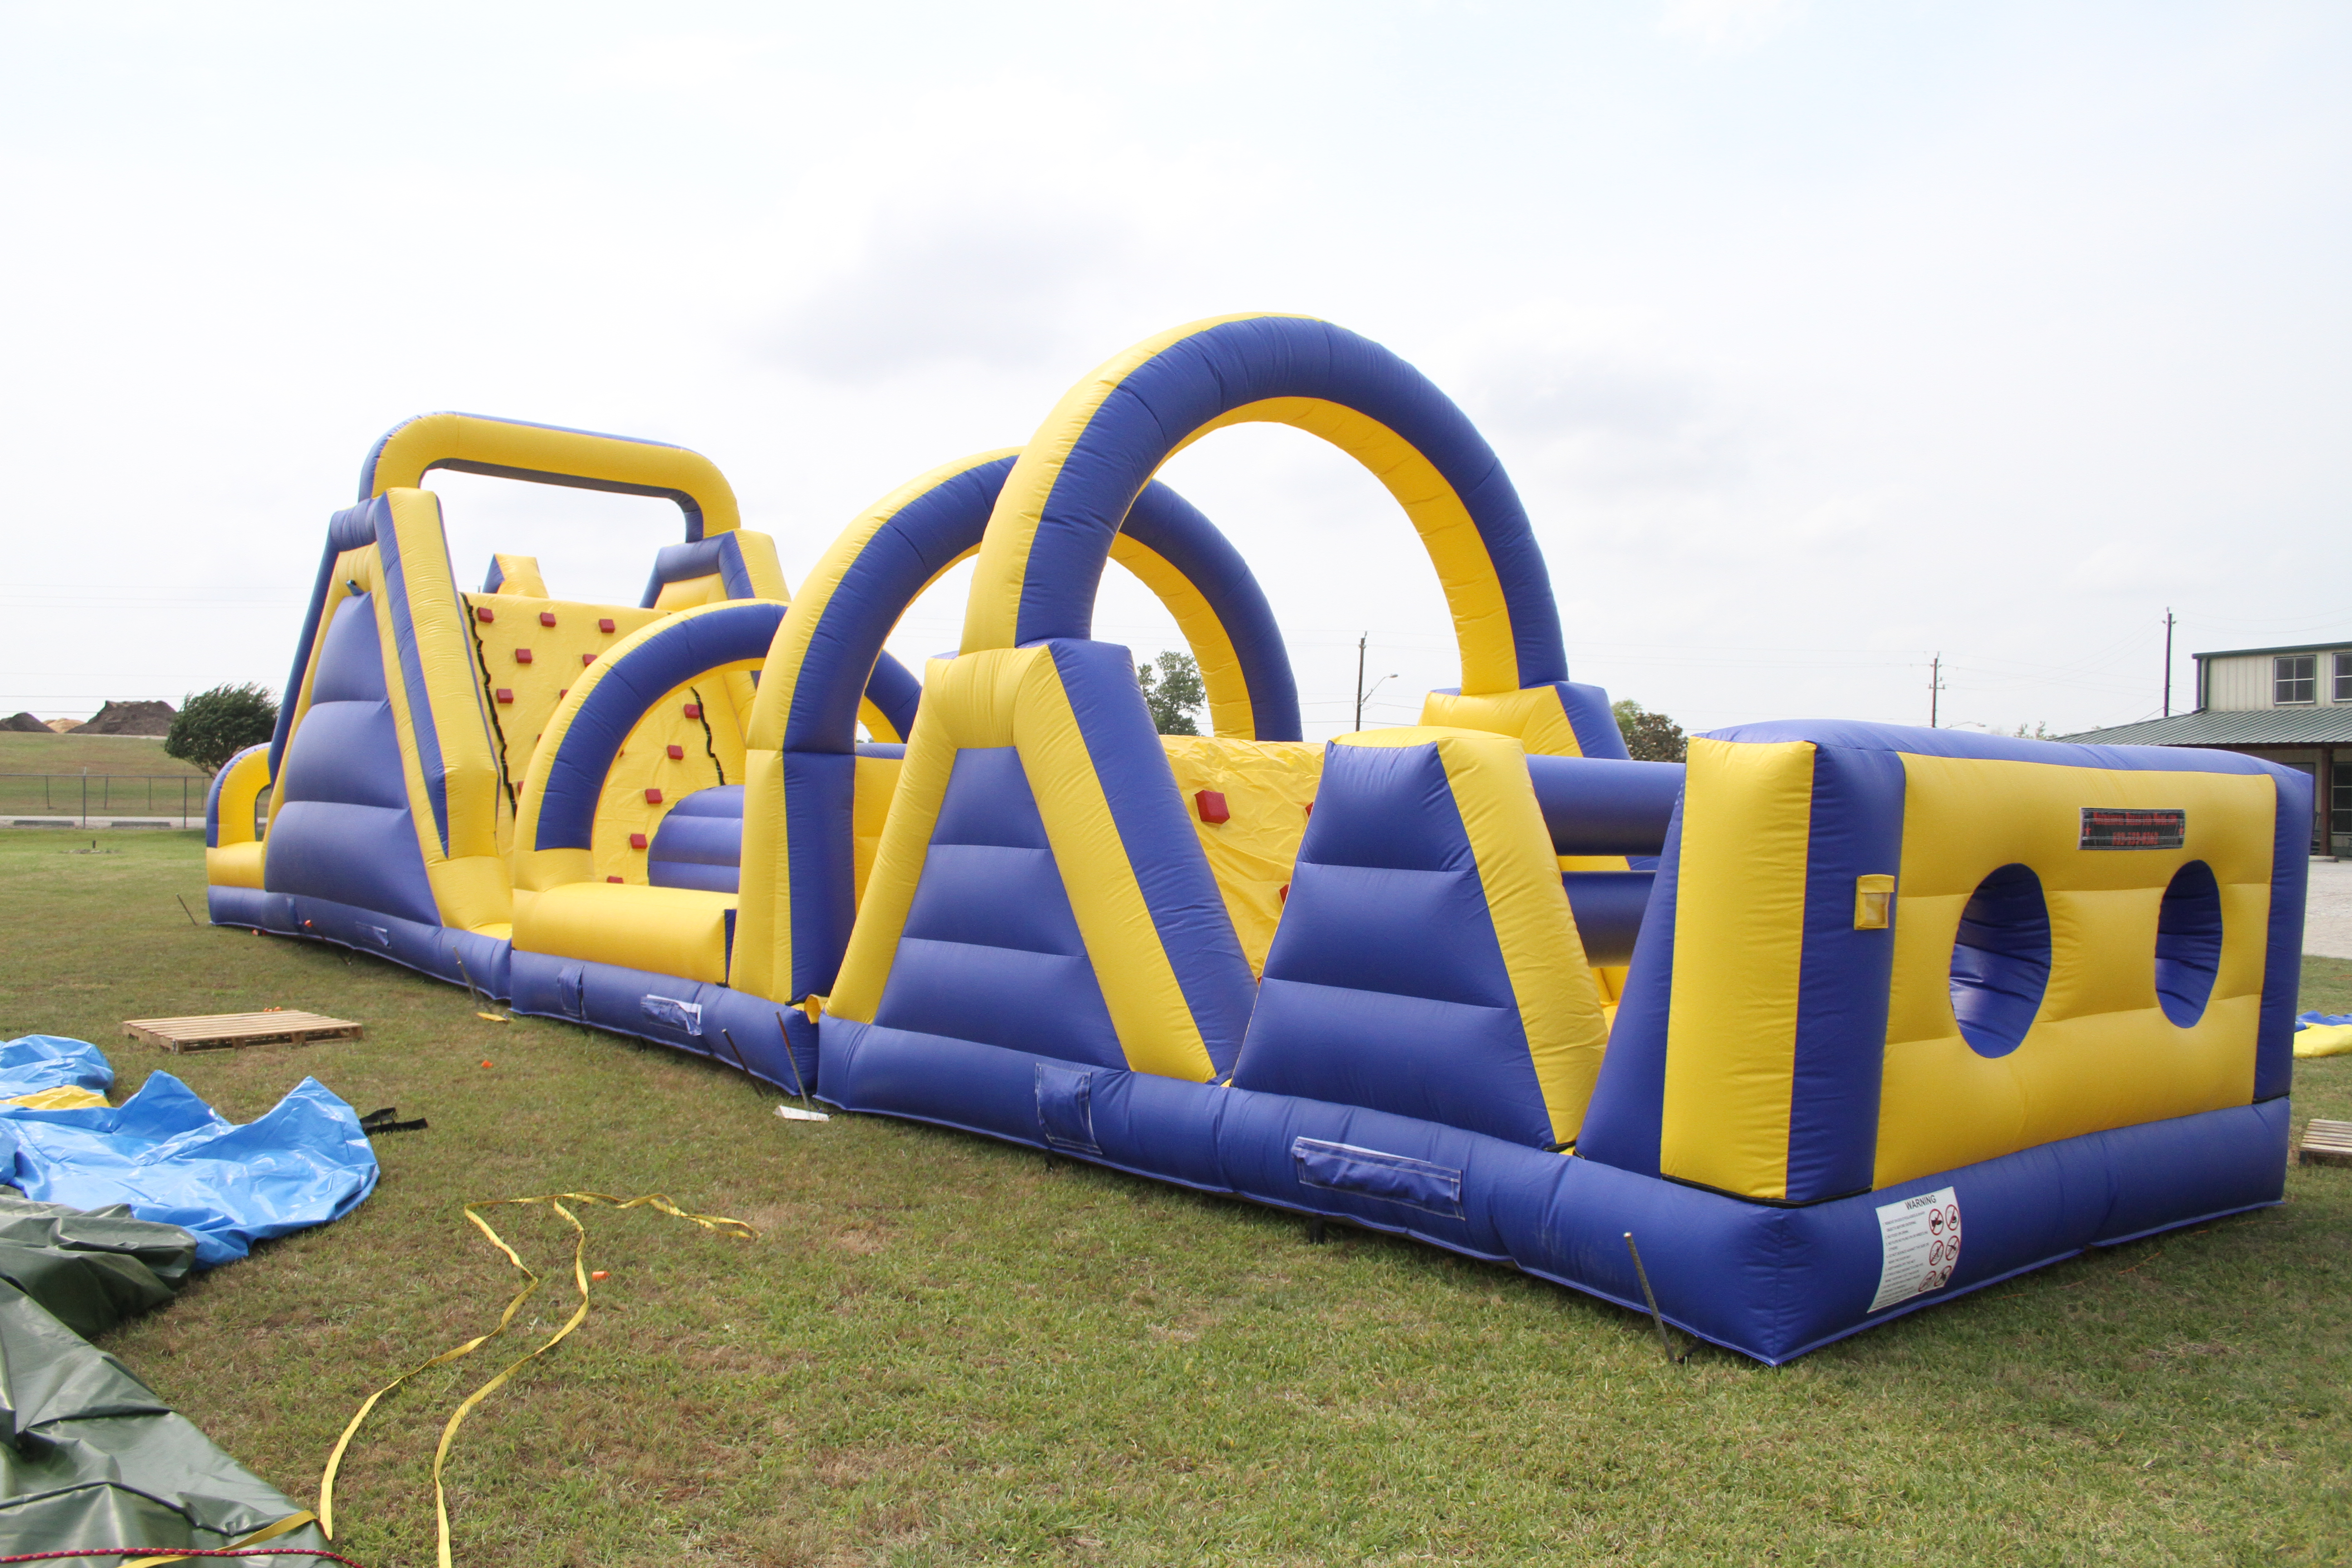 72 Foot Obstacle Course 1